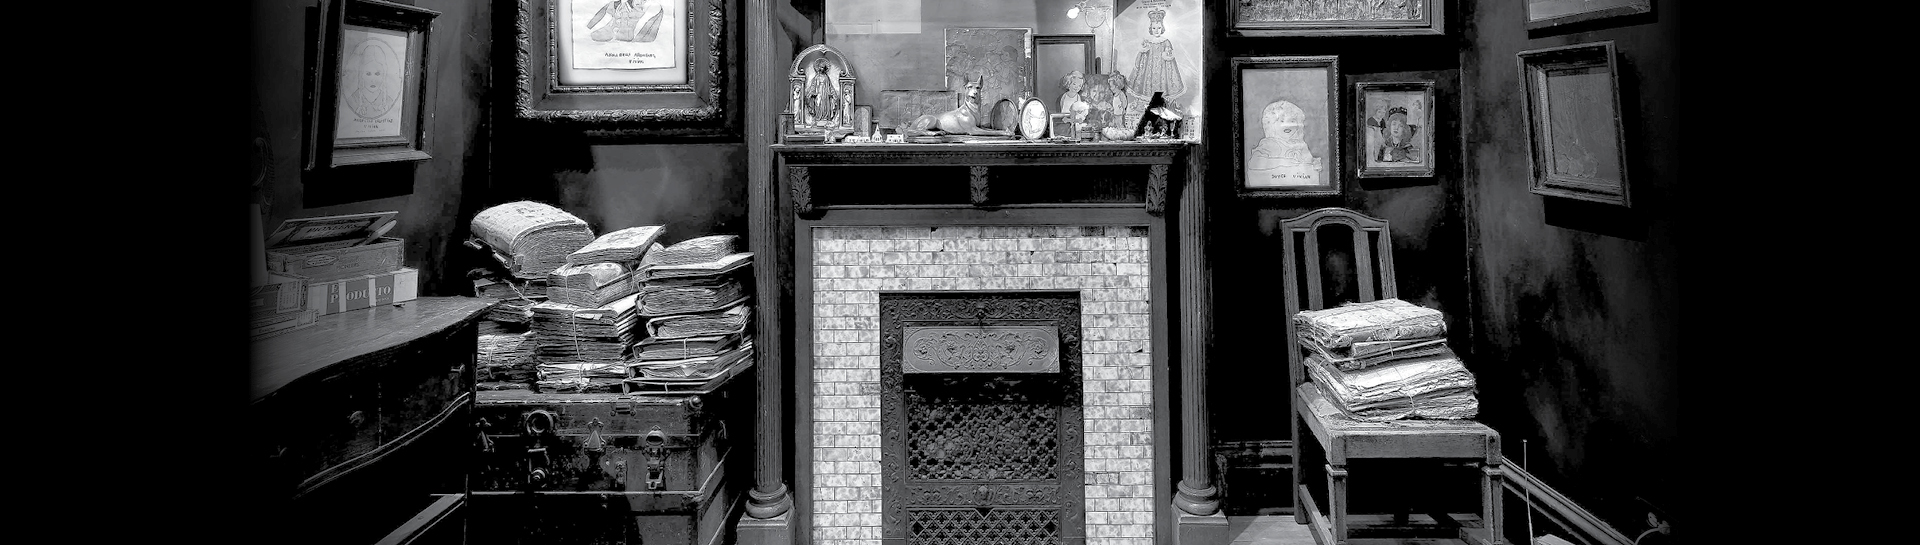 Henry Darger's fireplace